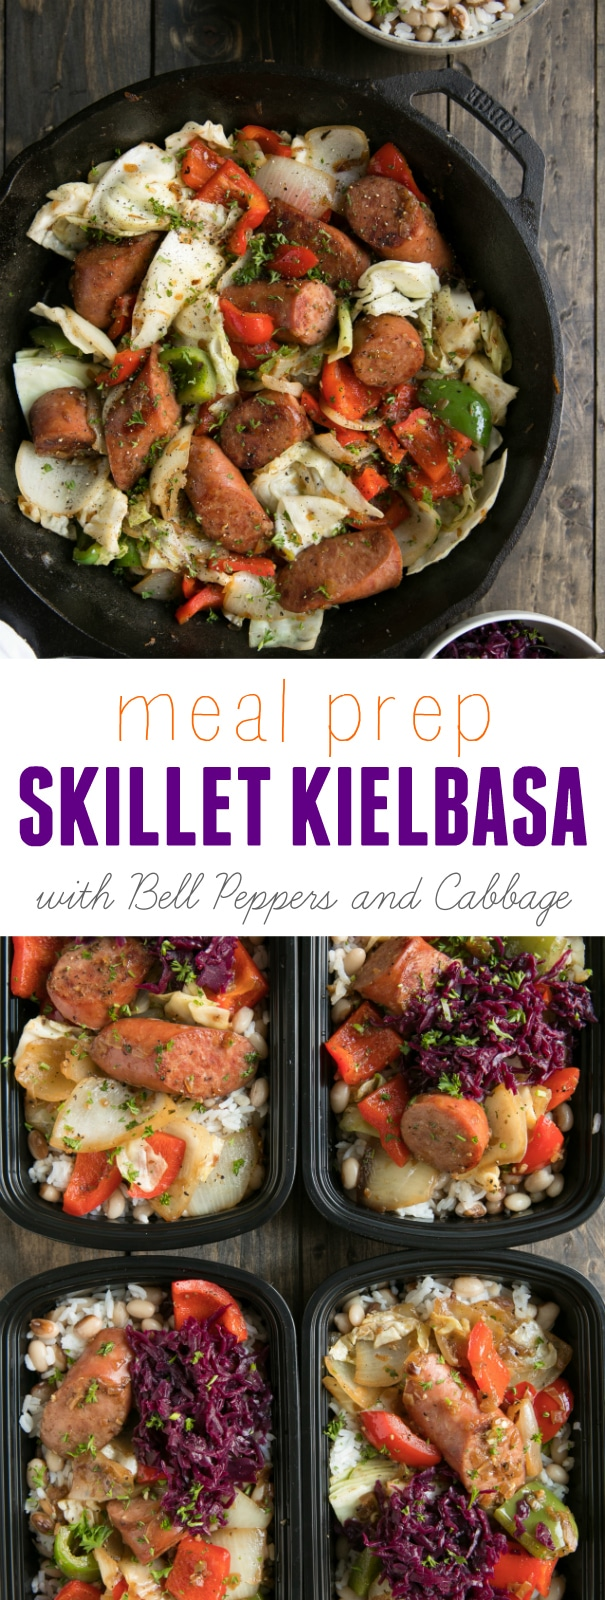 Meal Prep Skillet Kielbasa with Bell Peppers via @theforkedspoon #mealprep #kielbasa #sausage #30minutemeals #easyrecipes #skillet #fastrecipe | Find this recipe and more here, theforkedspoon.com